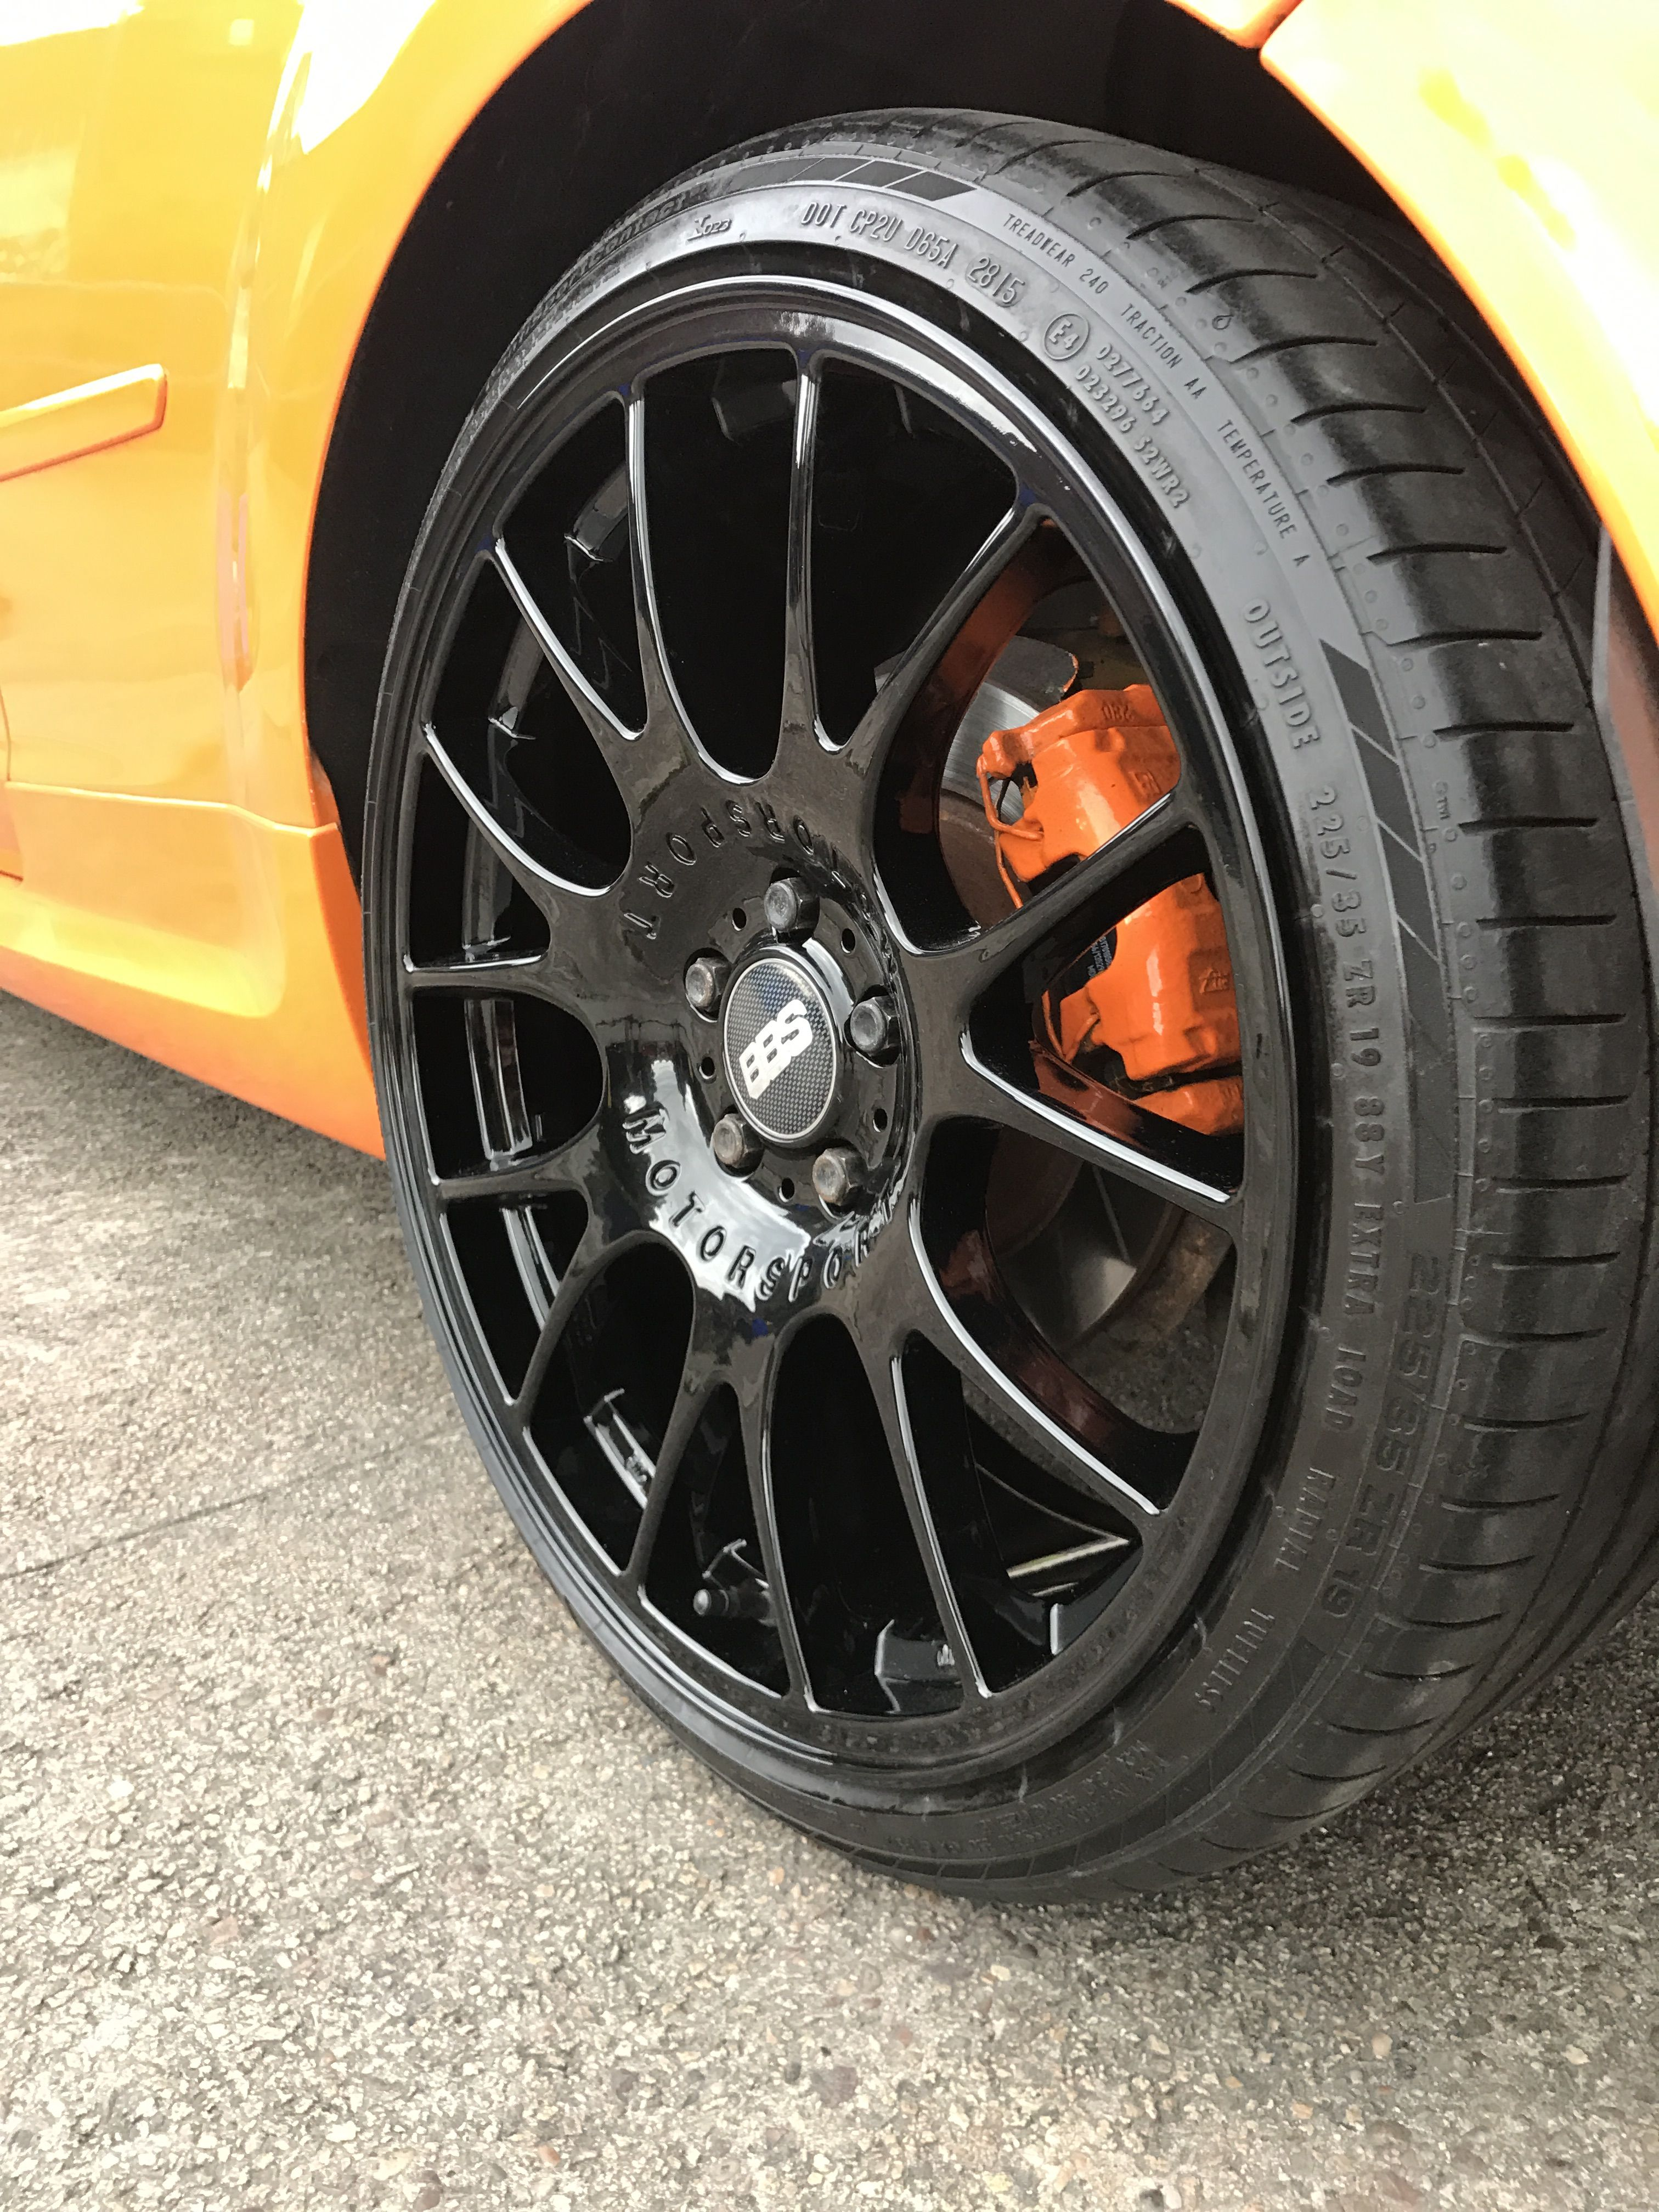 Ford Focus St Alloys We Refurbished And Powder Coated Gloss Black